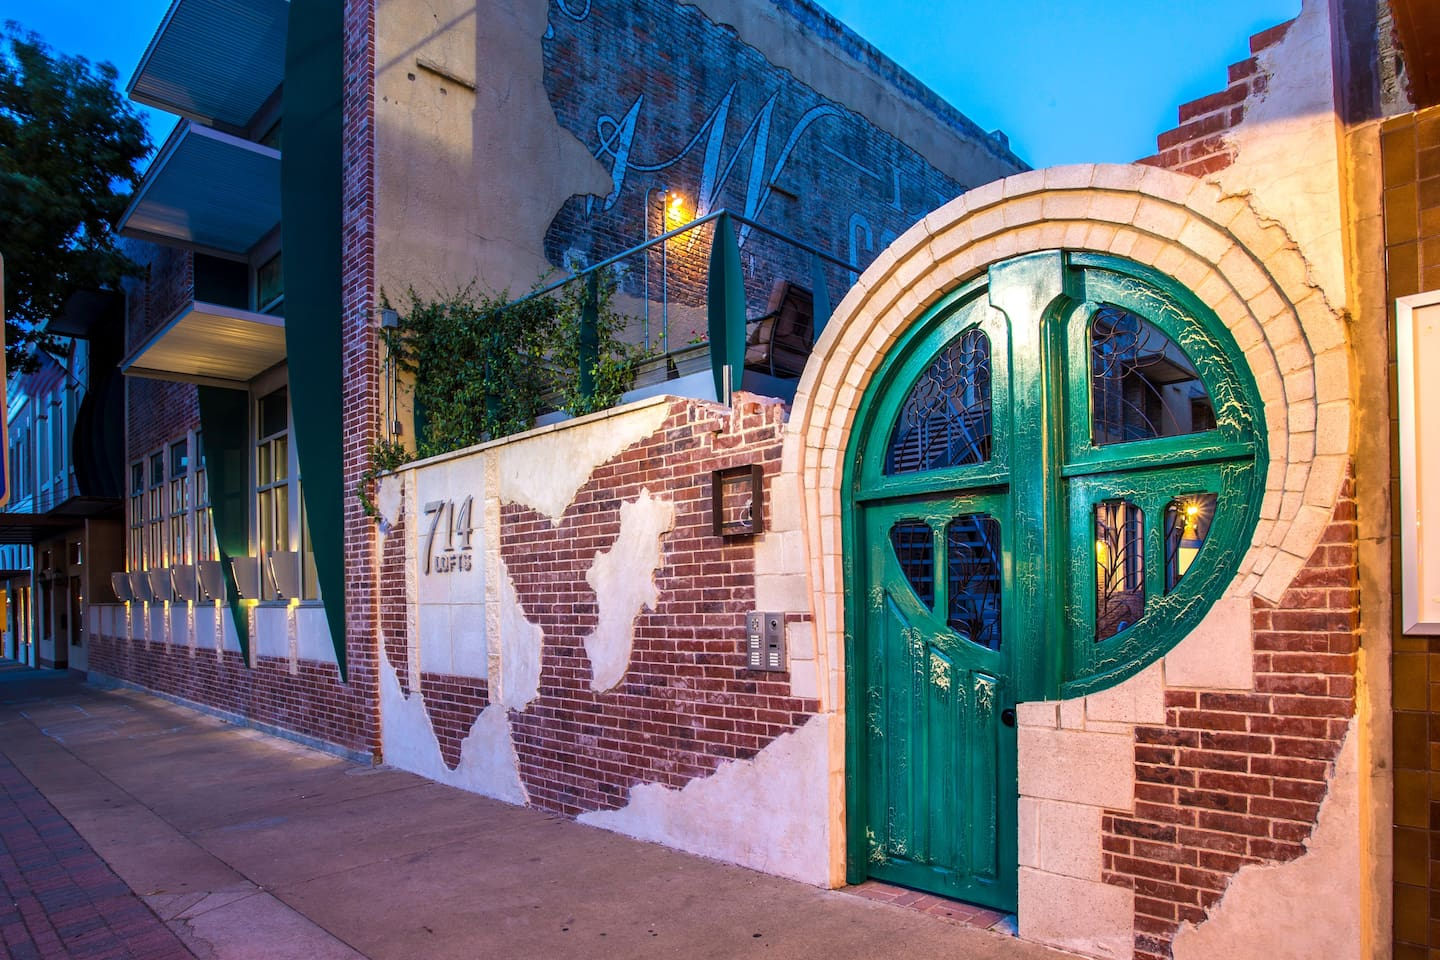 The very famous Green Door, welcomes guests to Funky Town!